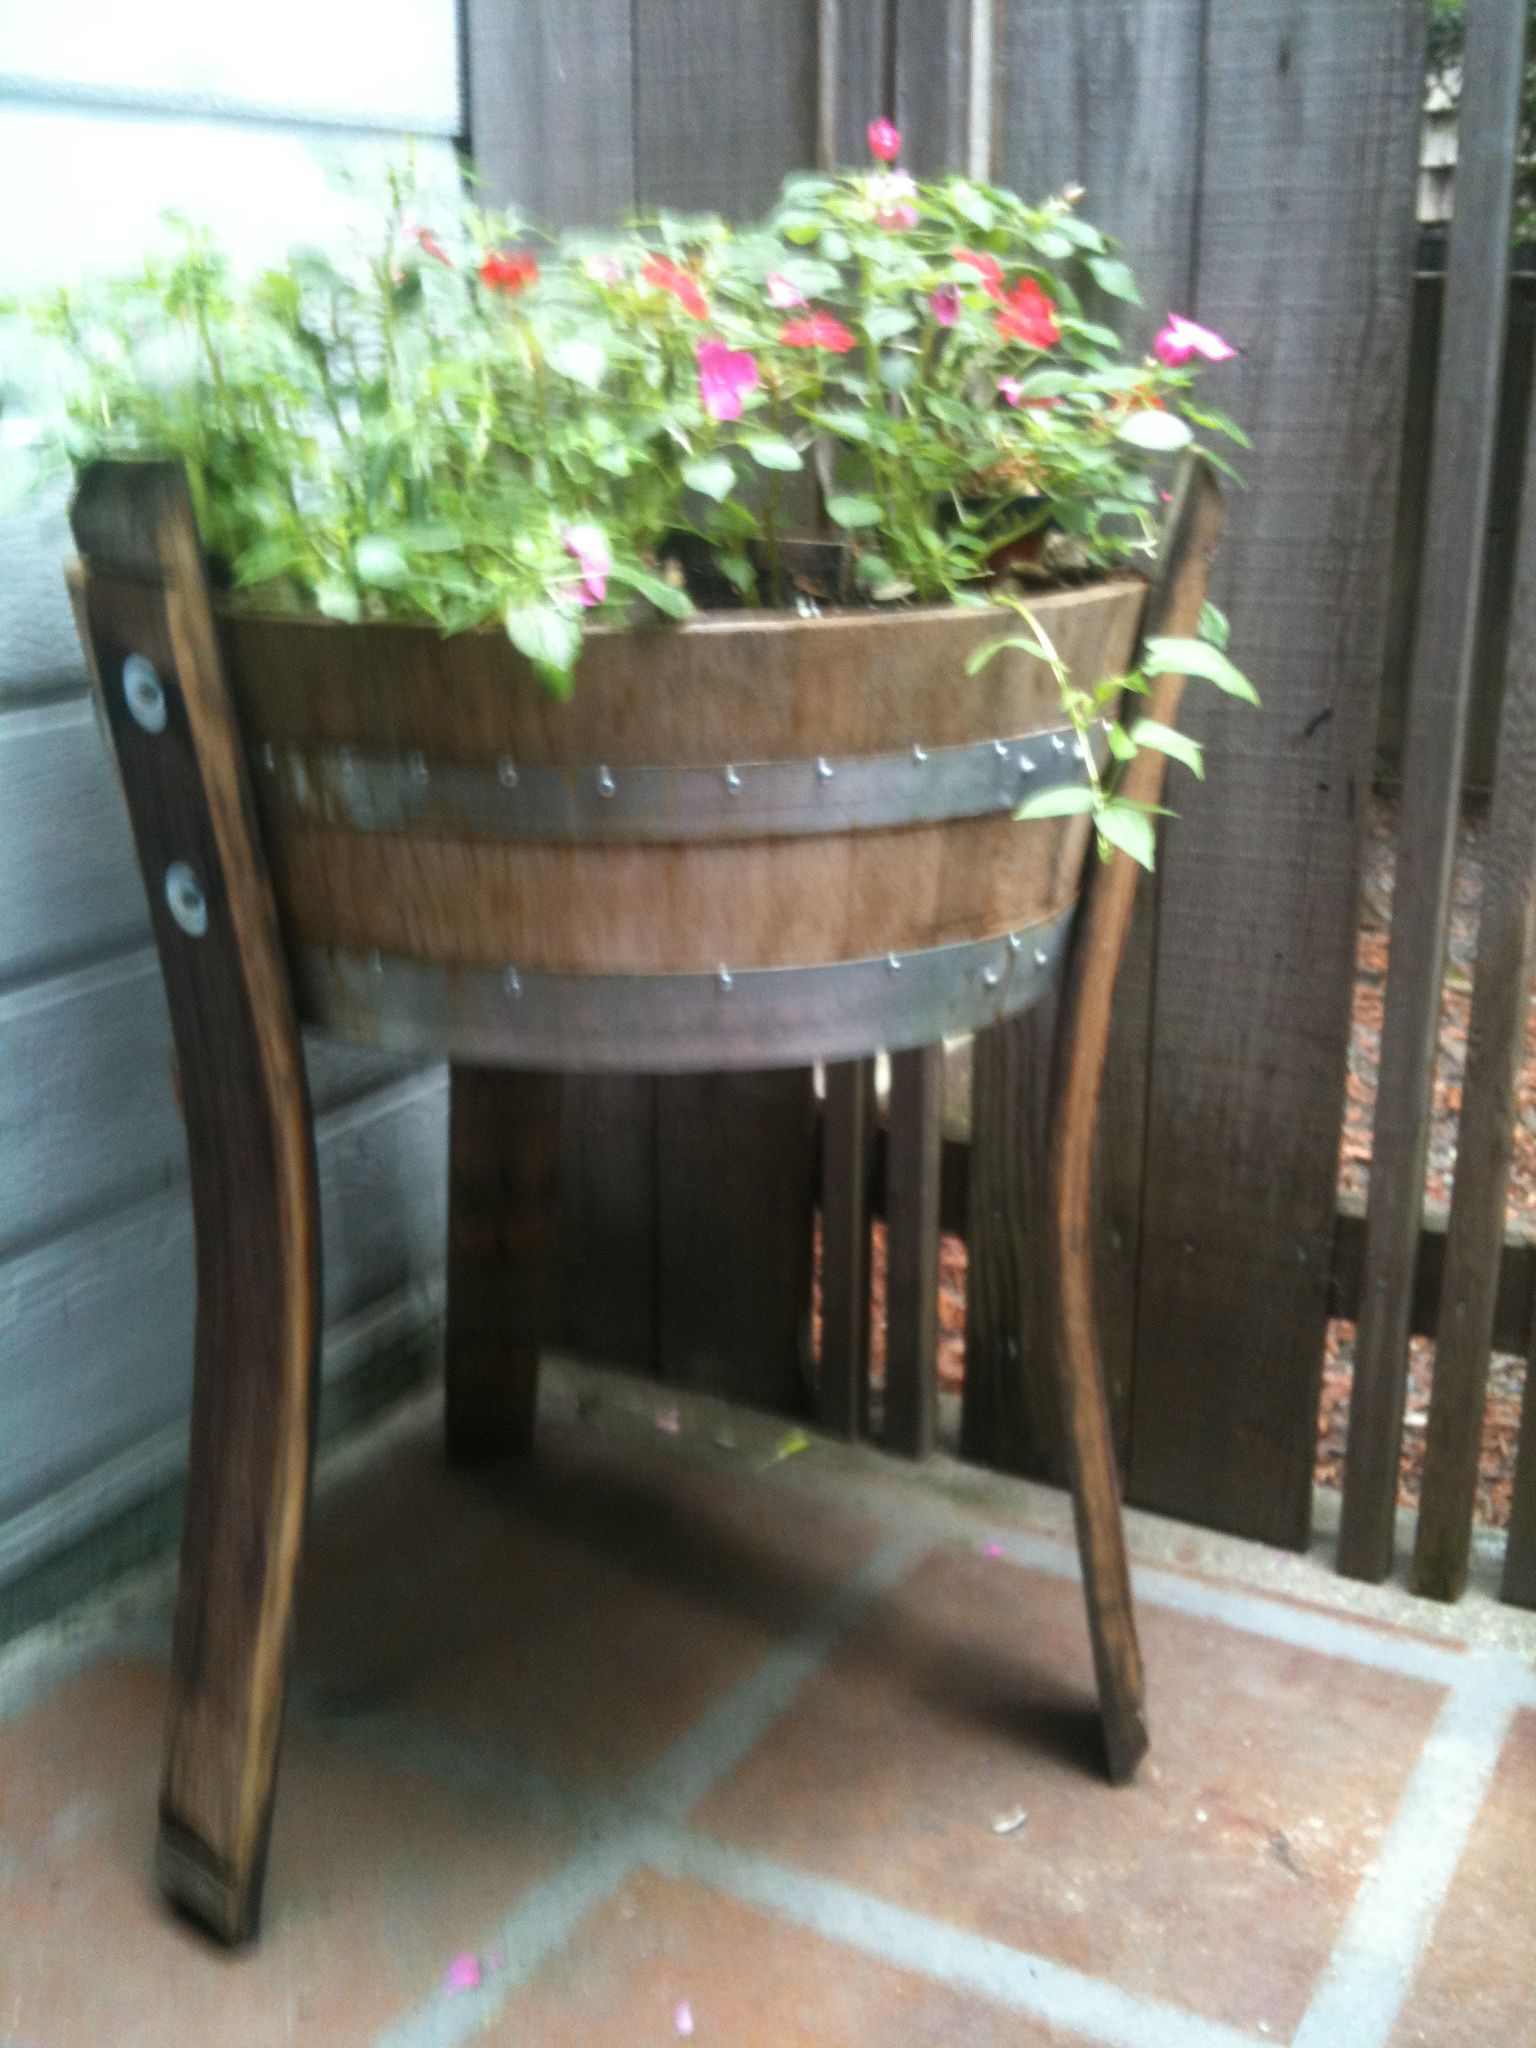 Legged Planter Quarter Barrel Planter With Stave Legs Diy Home Projects